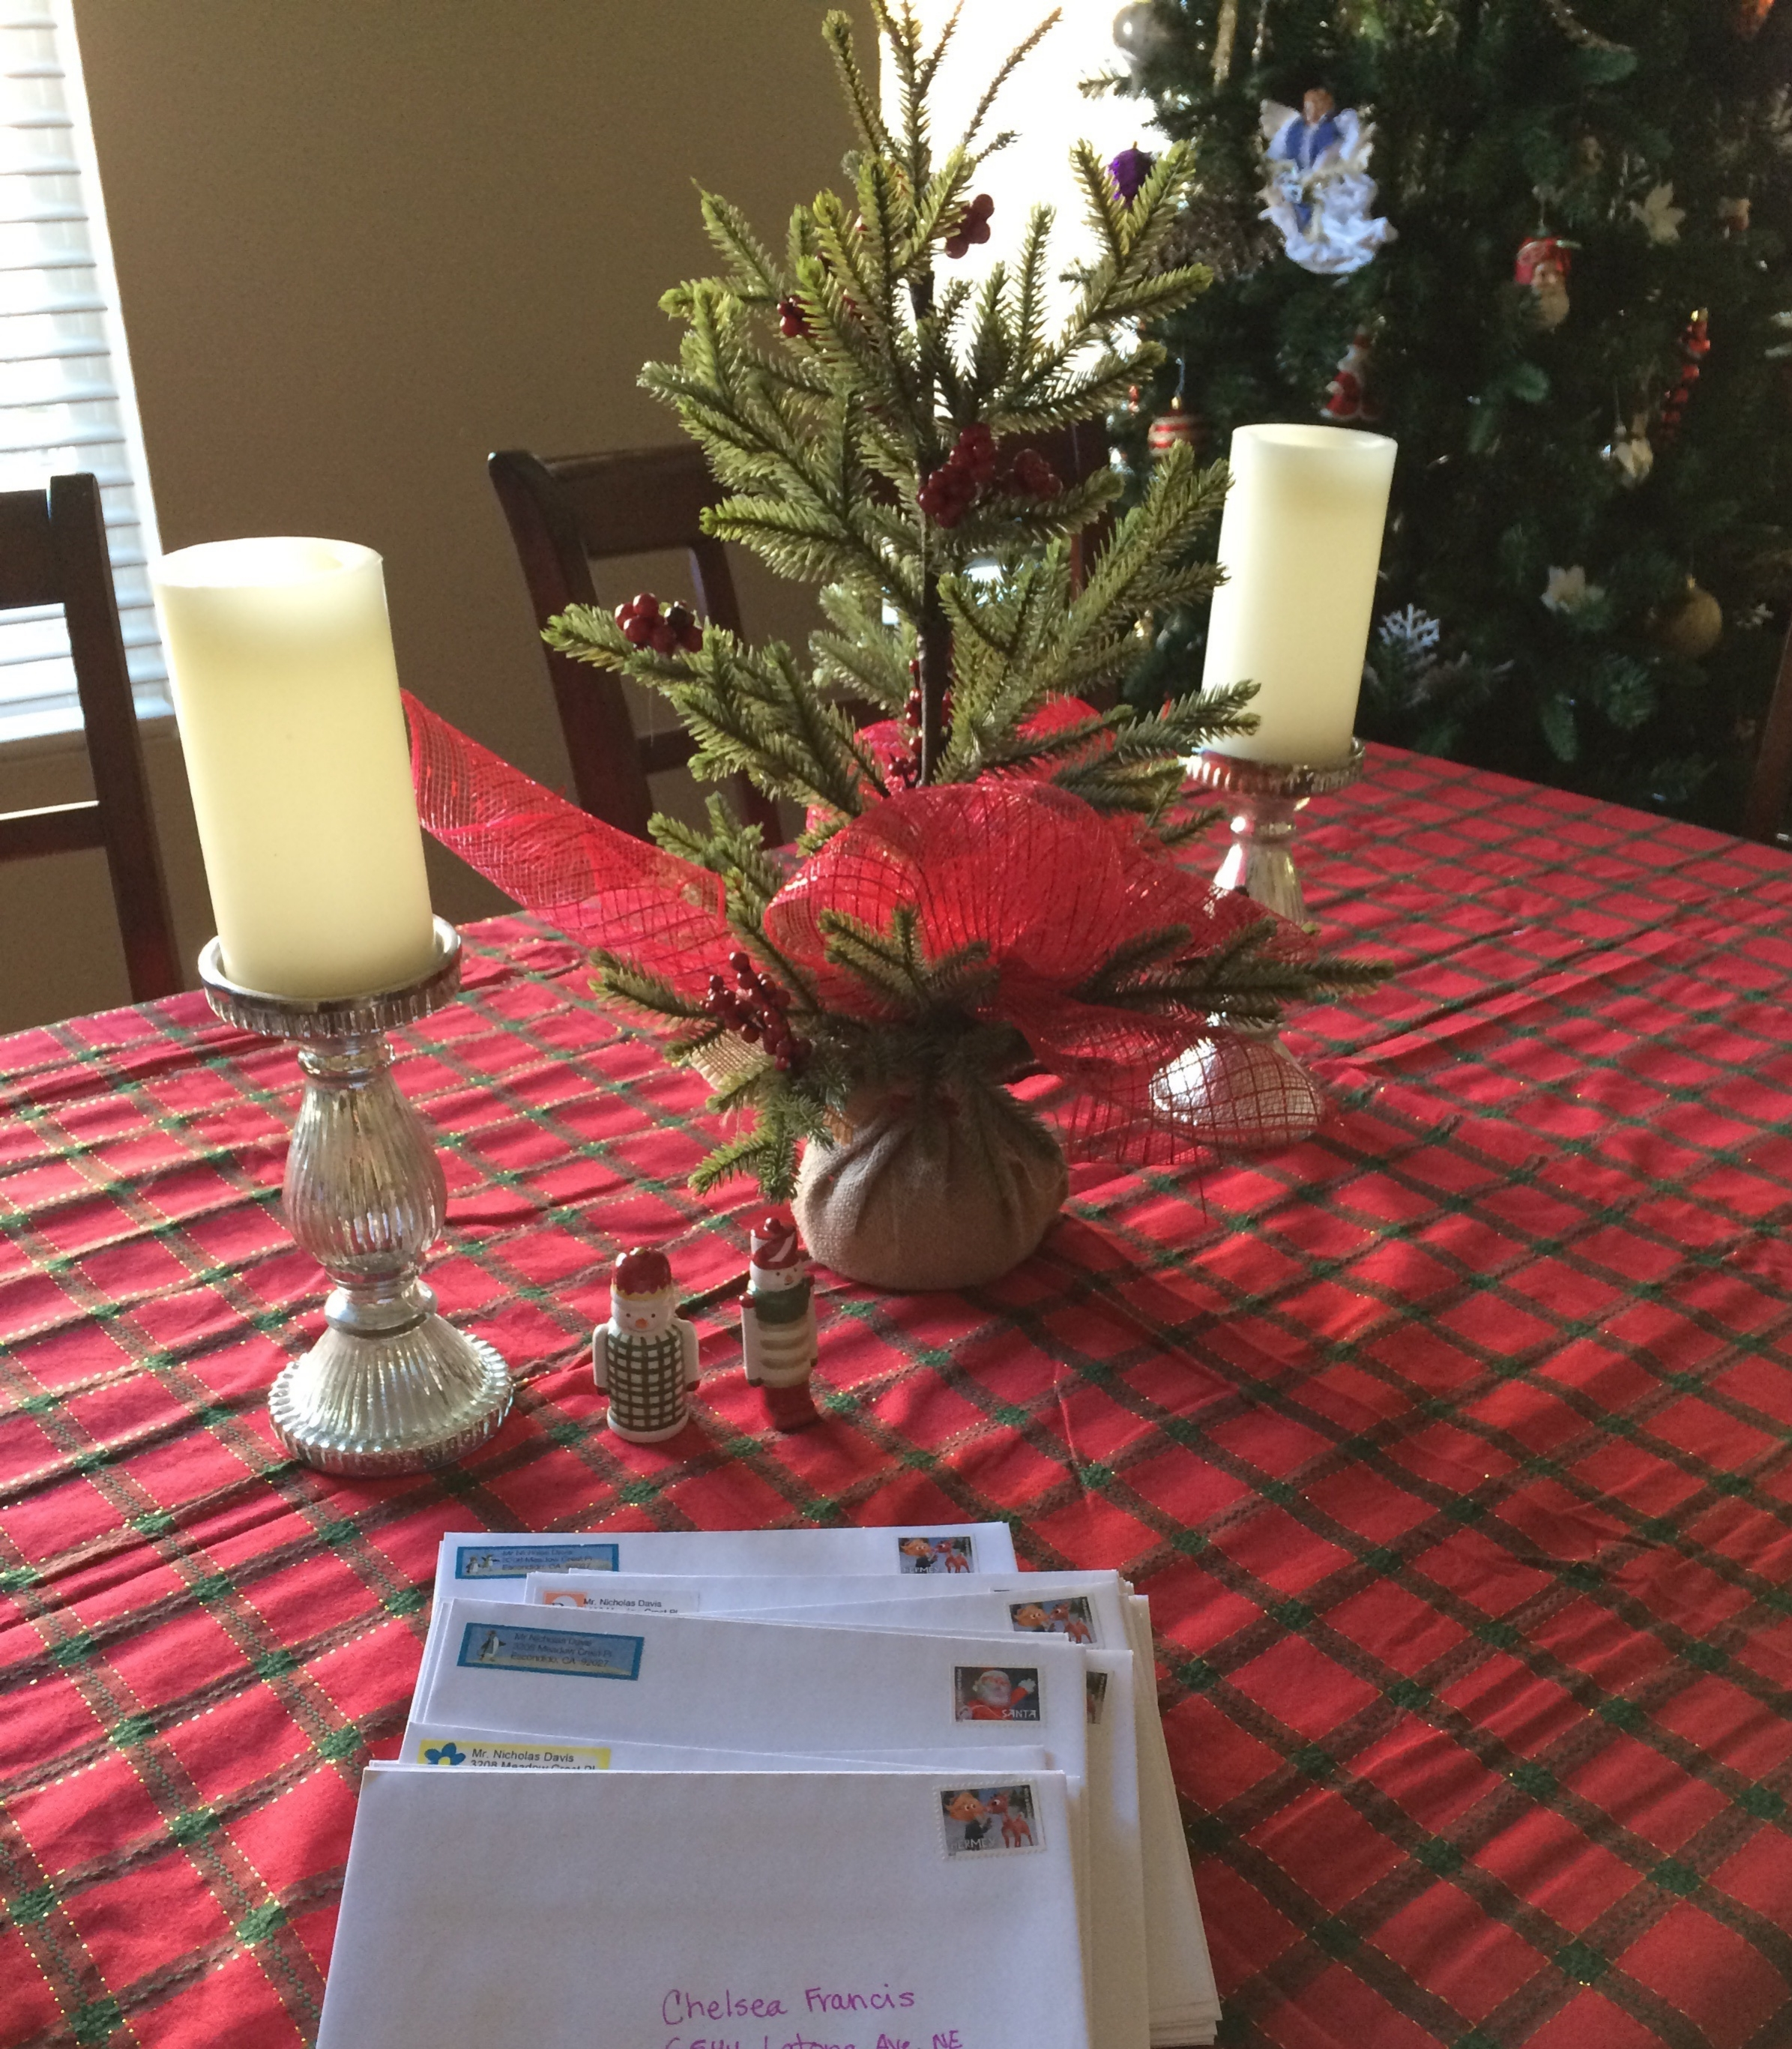 Christmas cards went out today. I can't wait to get some in the mail. I am like a kid.